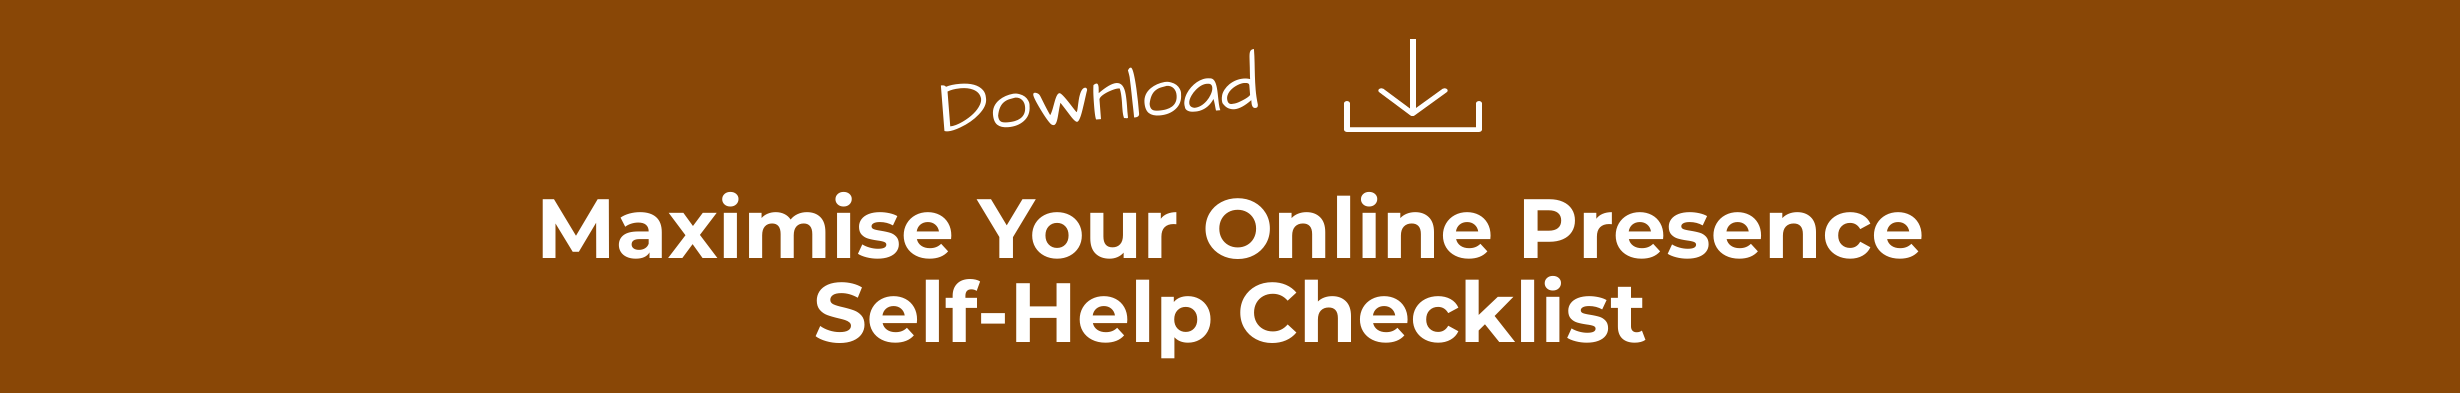 Download the maximise your online presence self-help checklist.